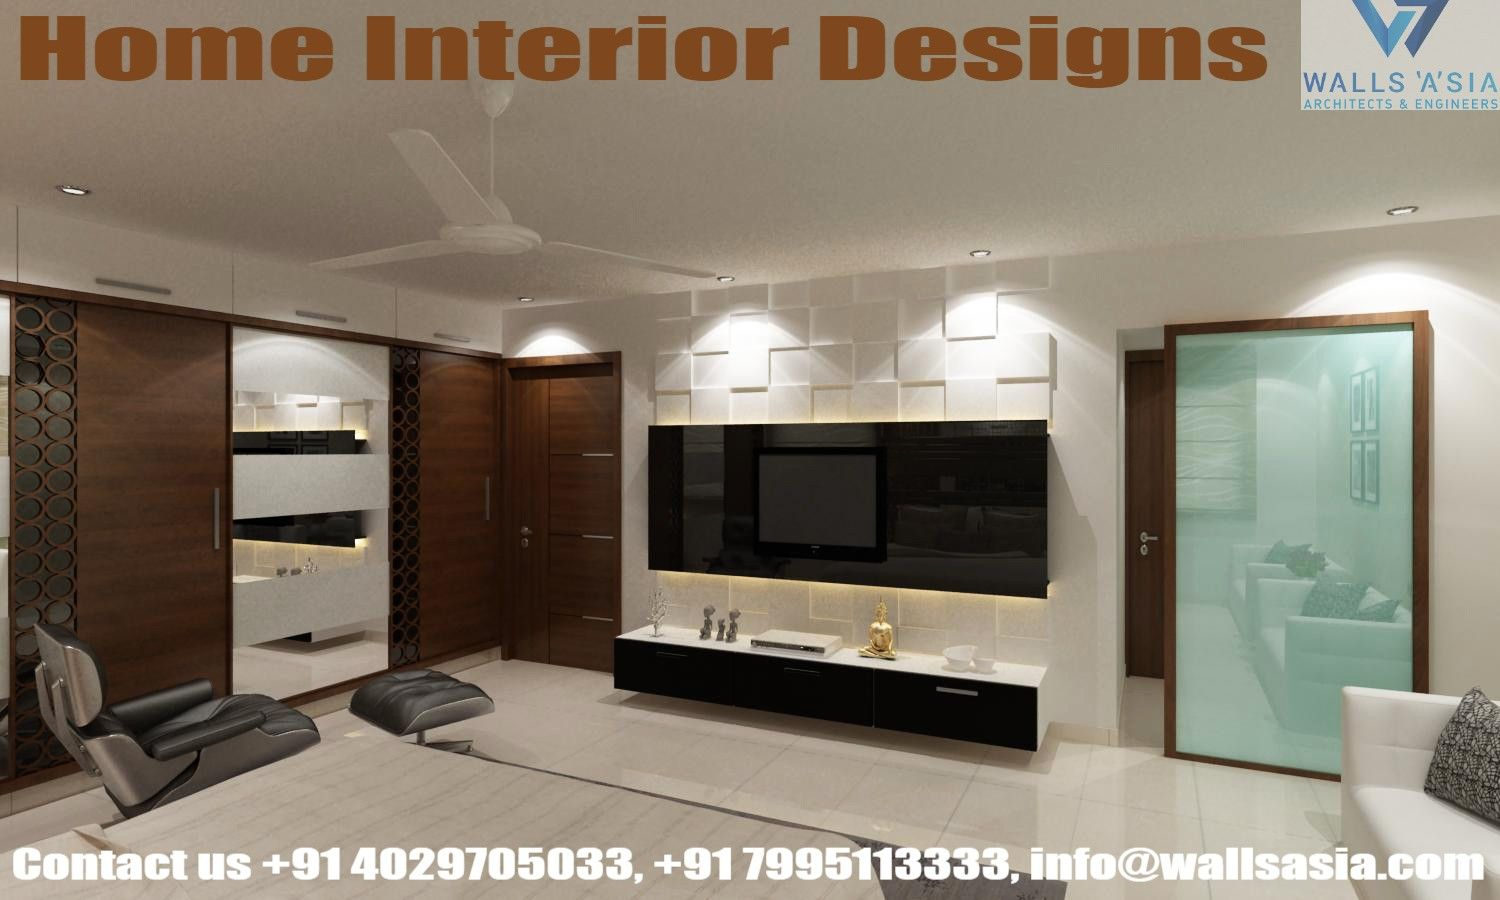 Home Interior Designs By Walls Asia Architects And Interior